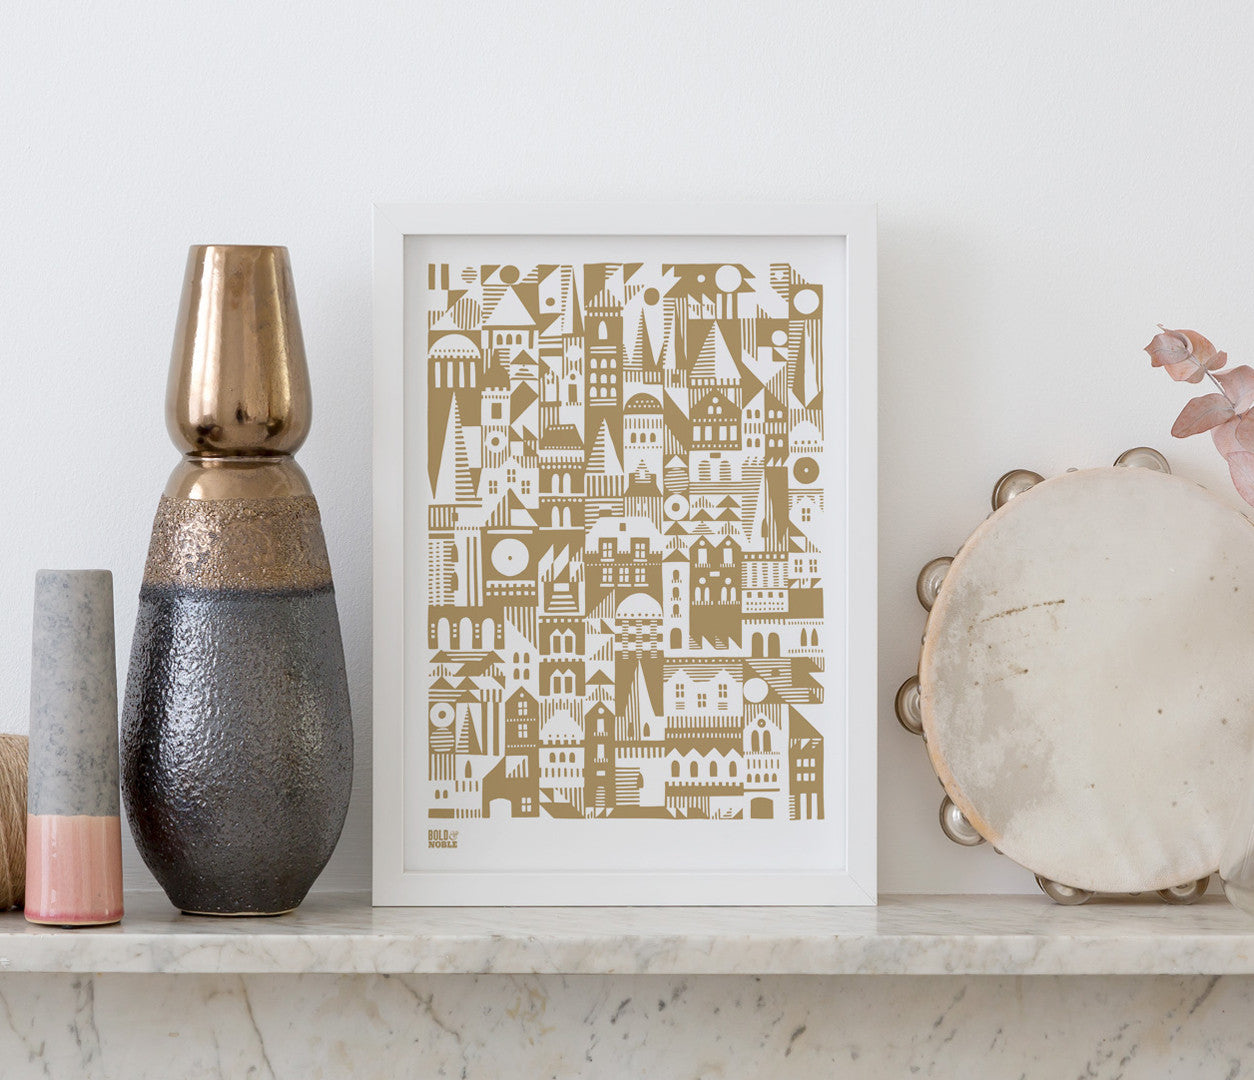 Pictures and Wall Art, Screen printed Coming Home Geometric design in bronze